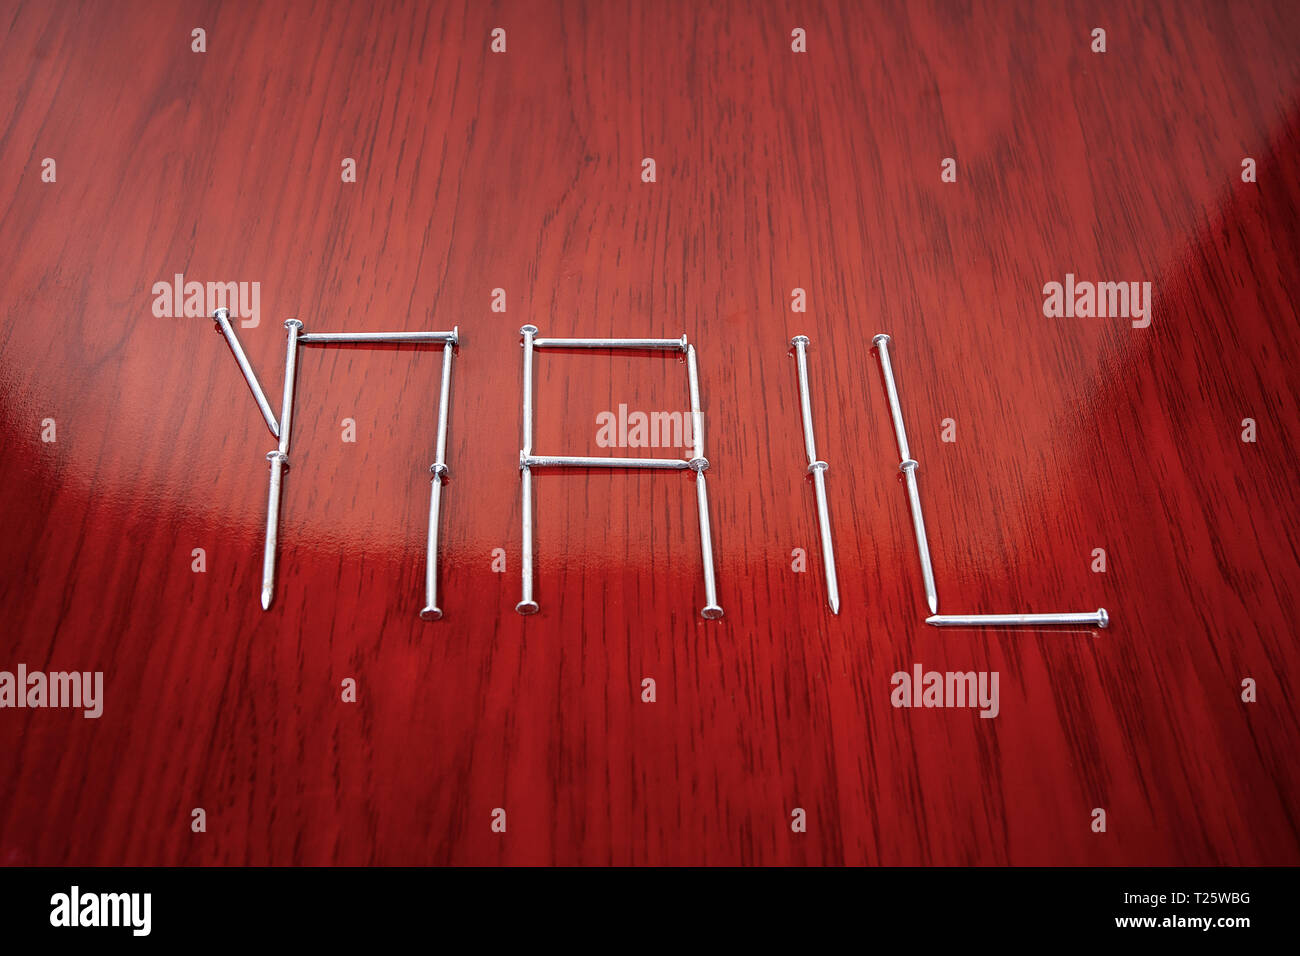 An organized group of nails forming the word nail - Stock Image